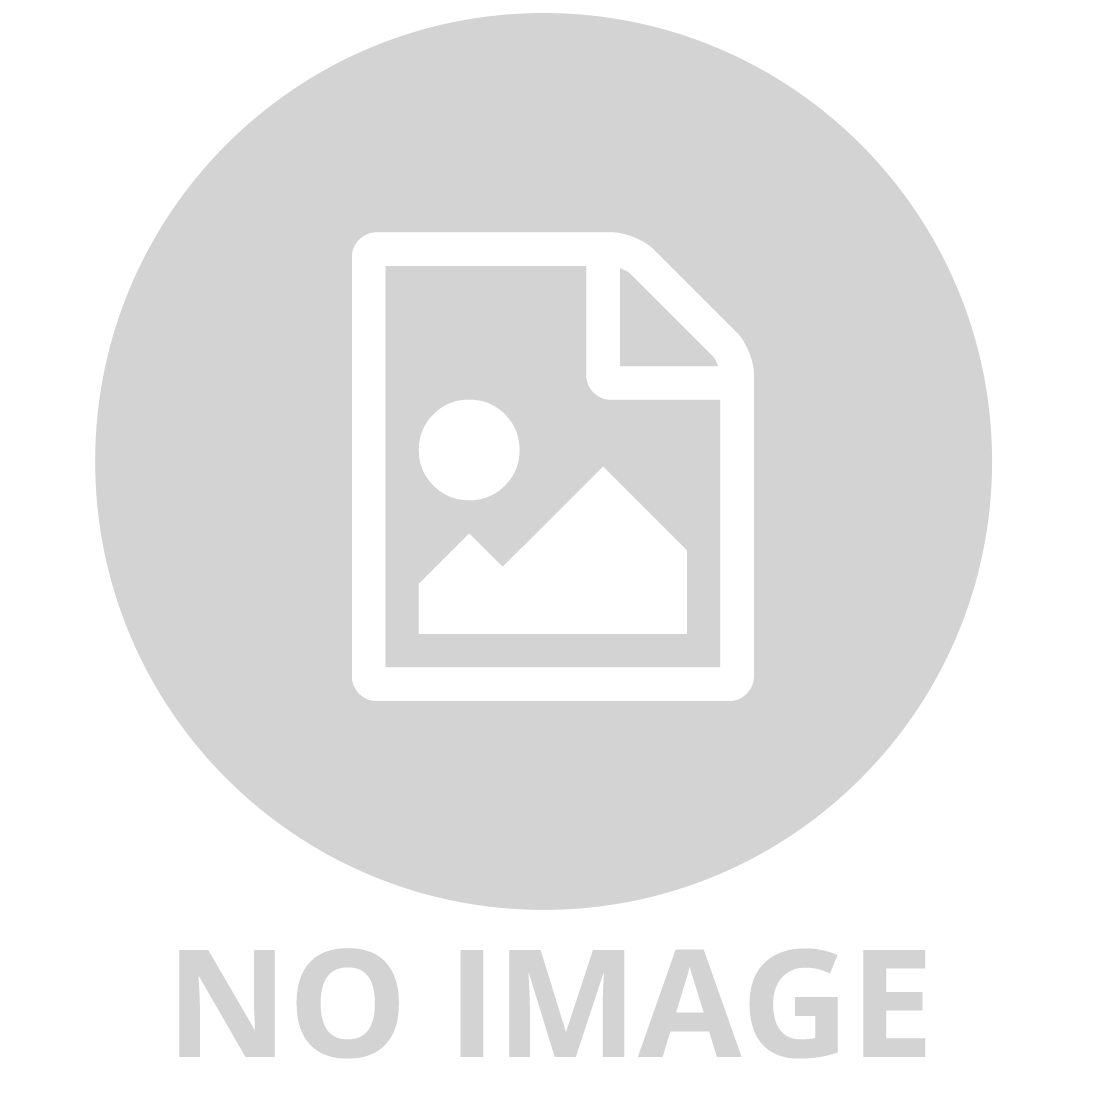 Velvet Floral Turq Large Drum SHD042 SHADE ONLY